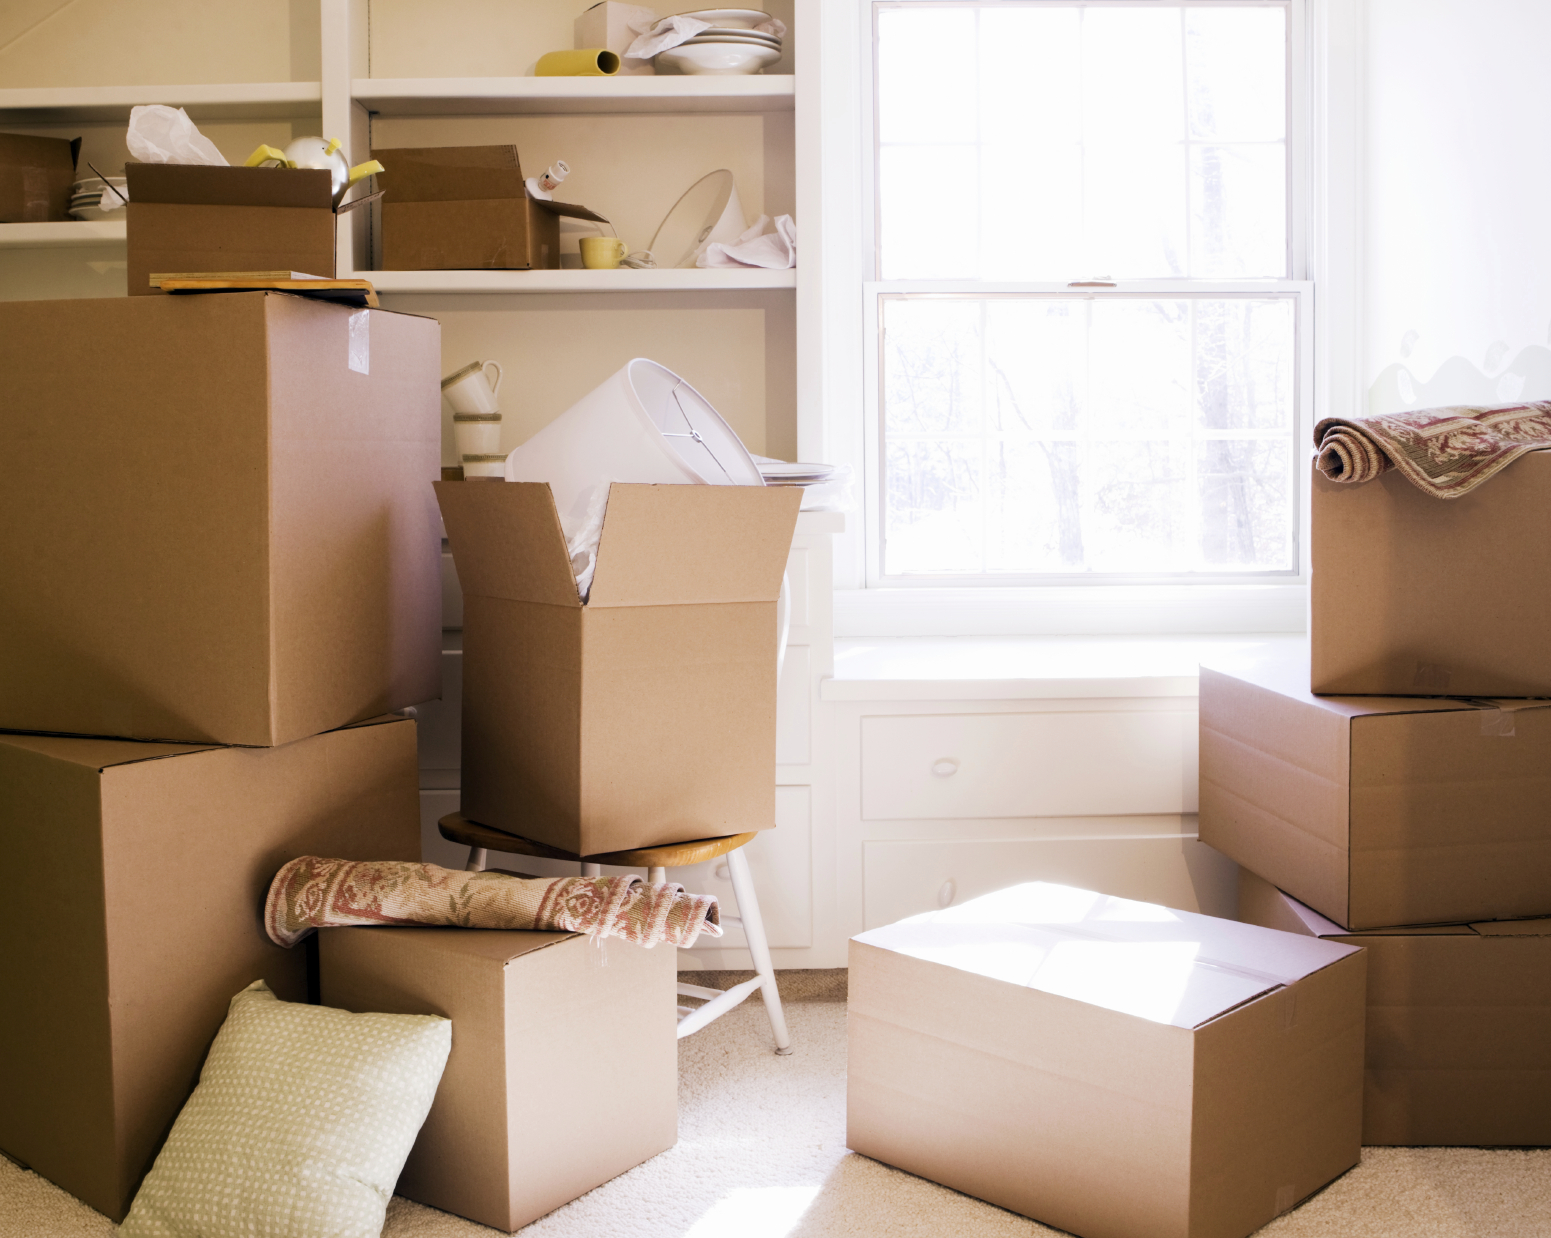 How to Best Compare Movers & Moving Companies